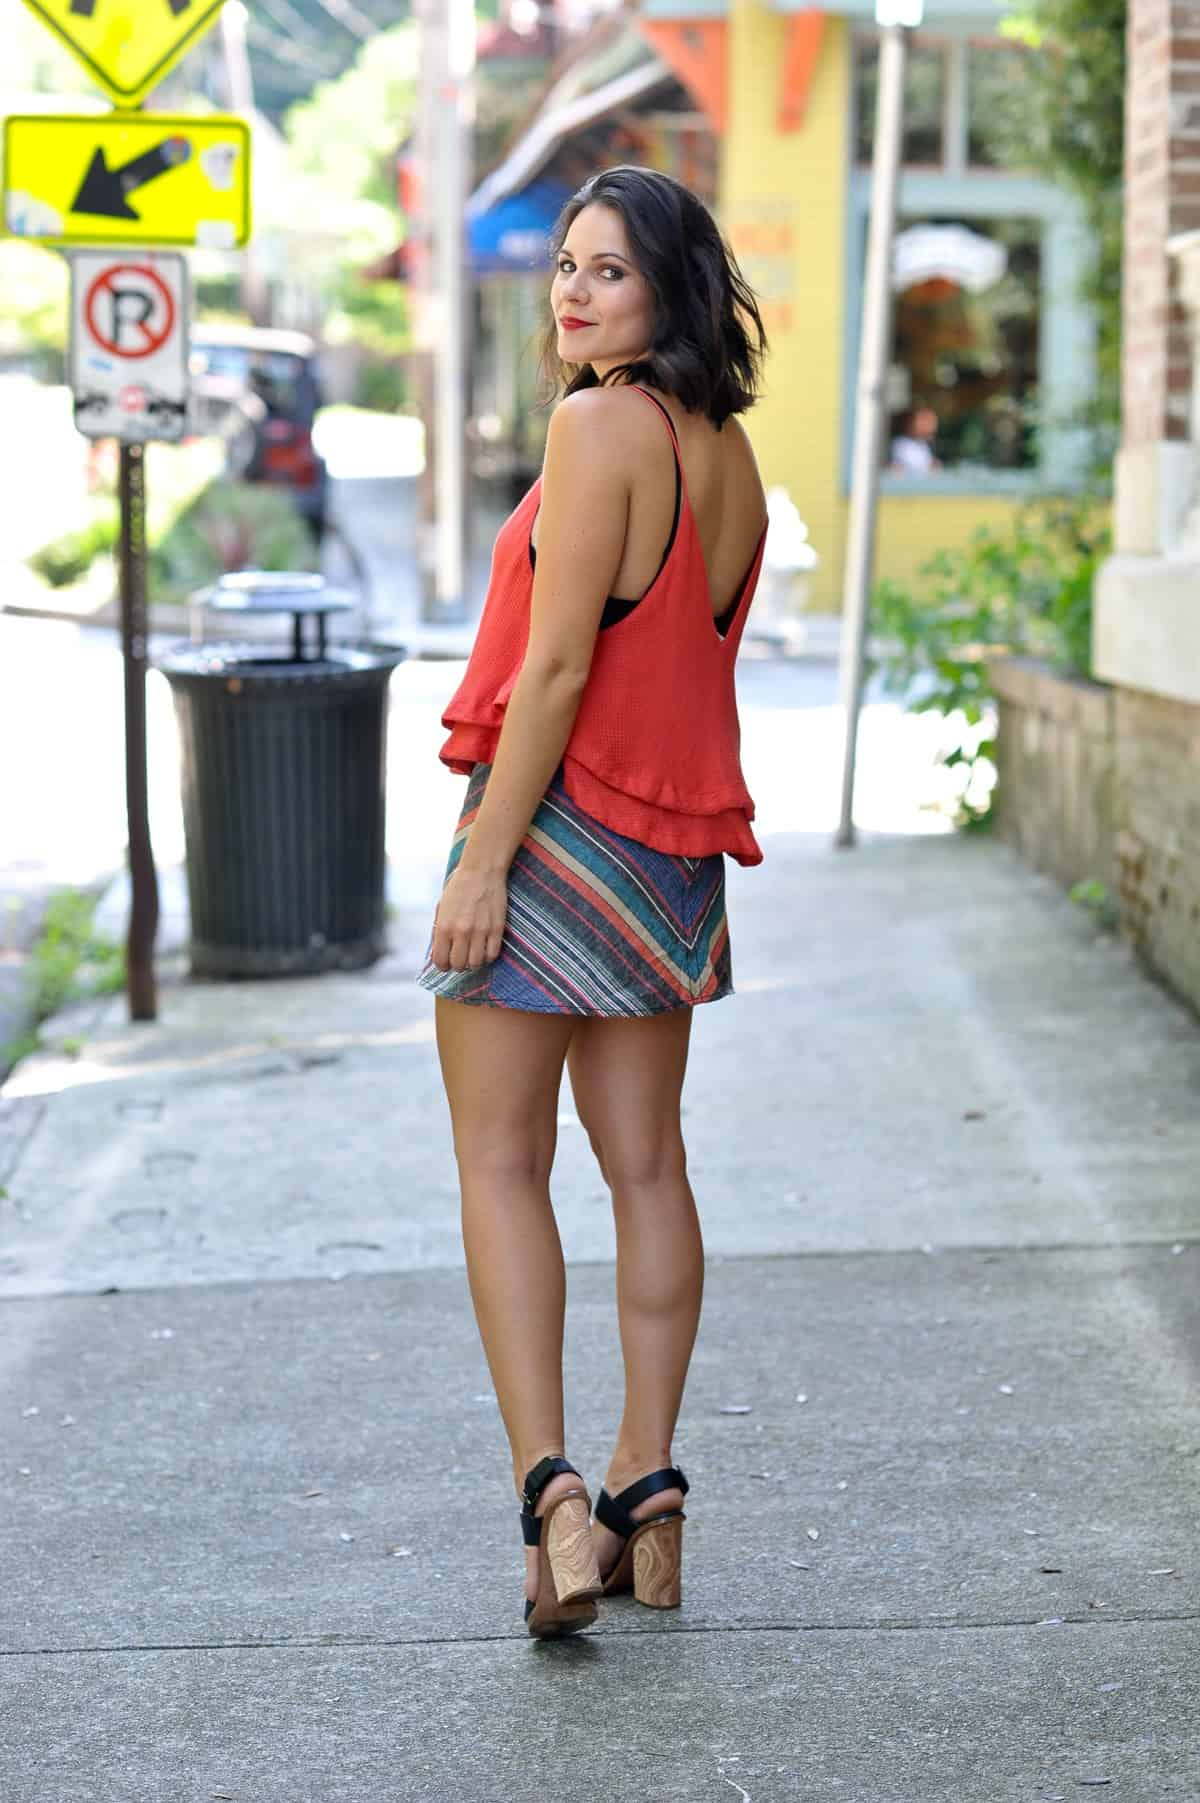 Free People Striped Mini Skirt - summer date night outfit ideas - My Style Vita @mystylevita